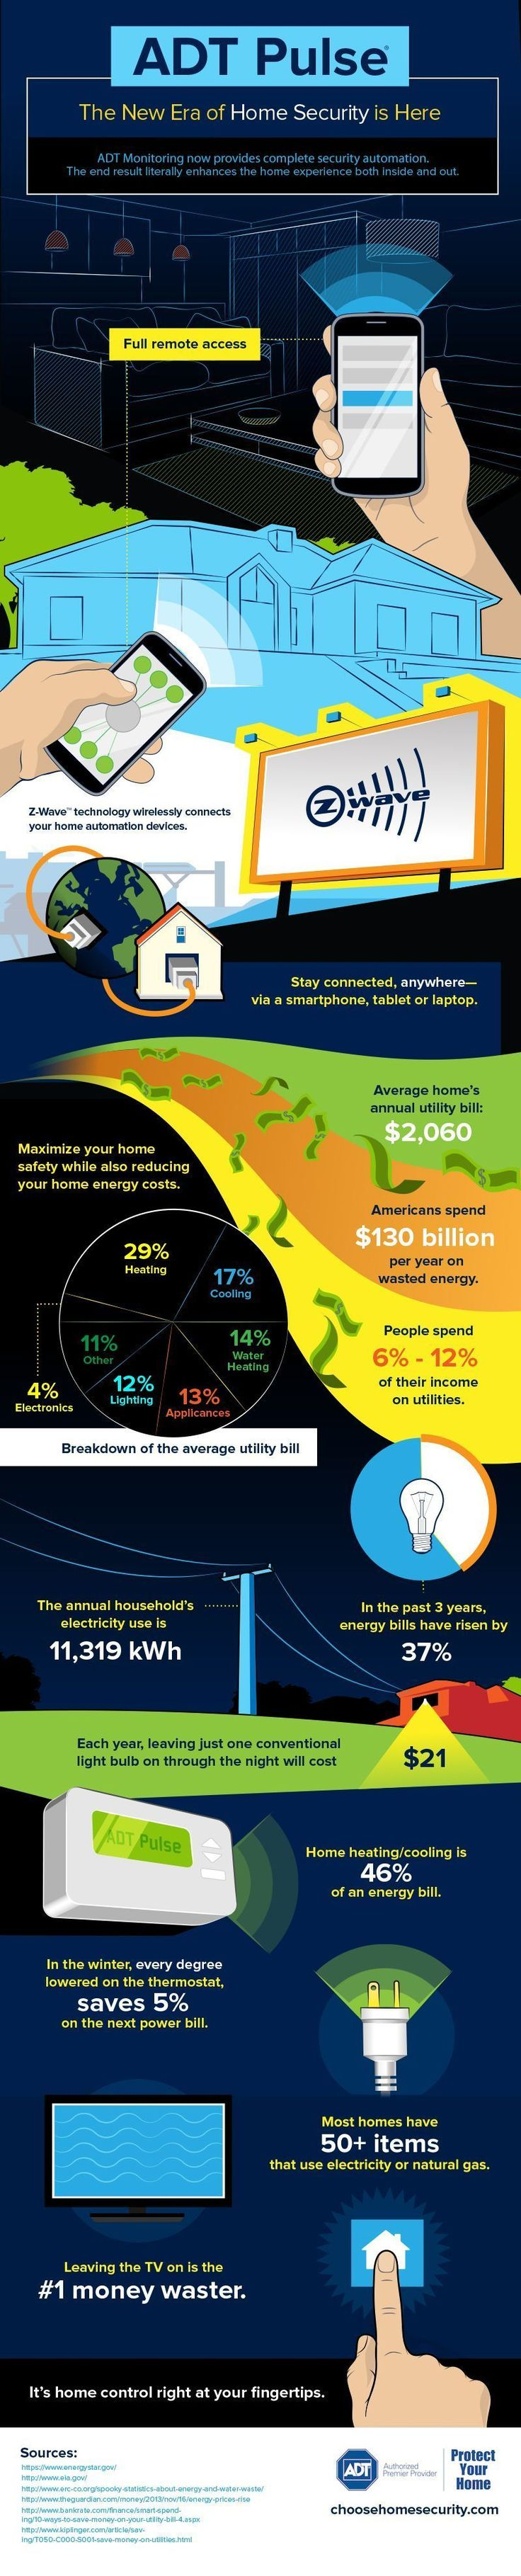 How ADT Pulse Is Revolutionizing Home Security Infographic #homesecuritytips